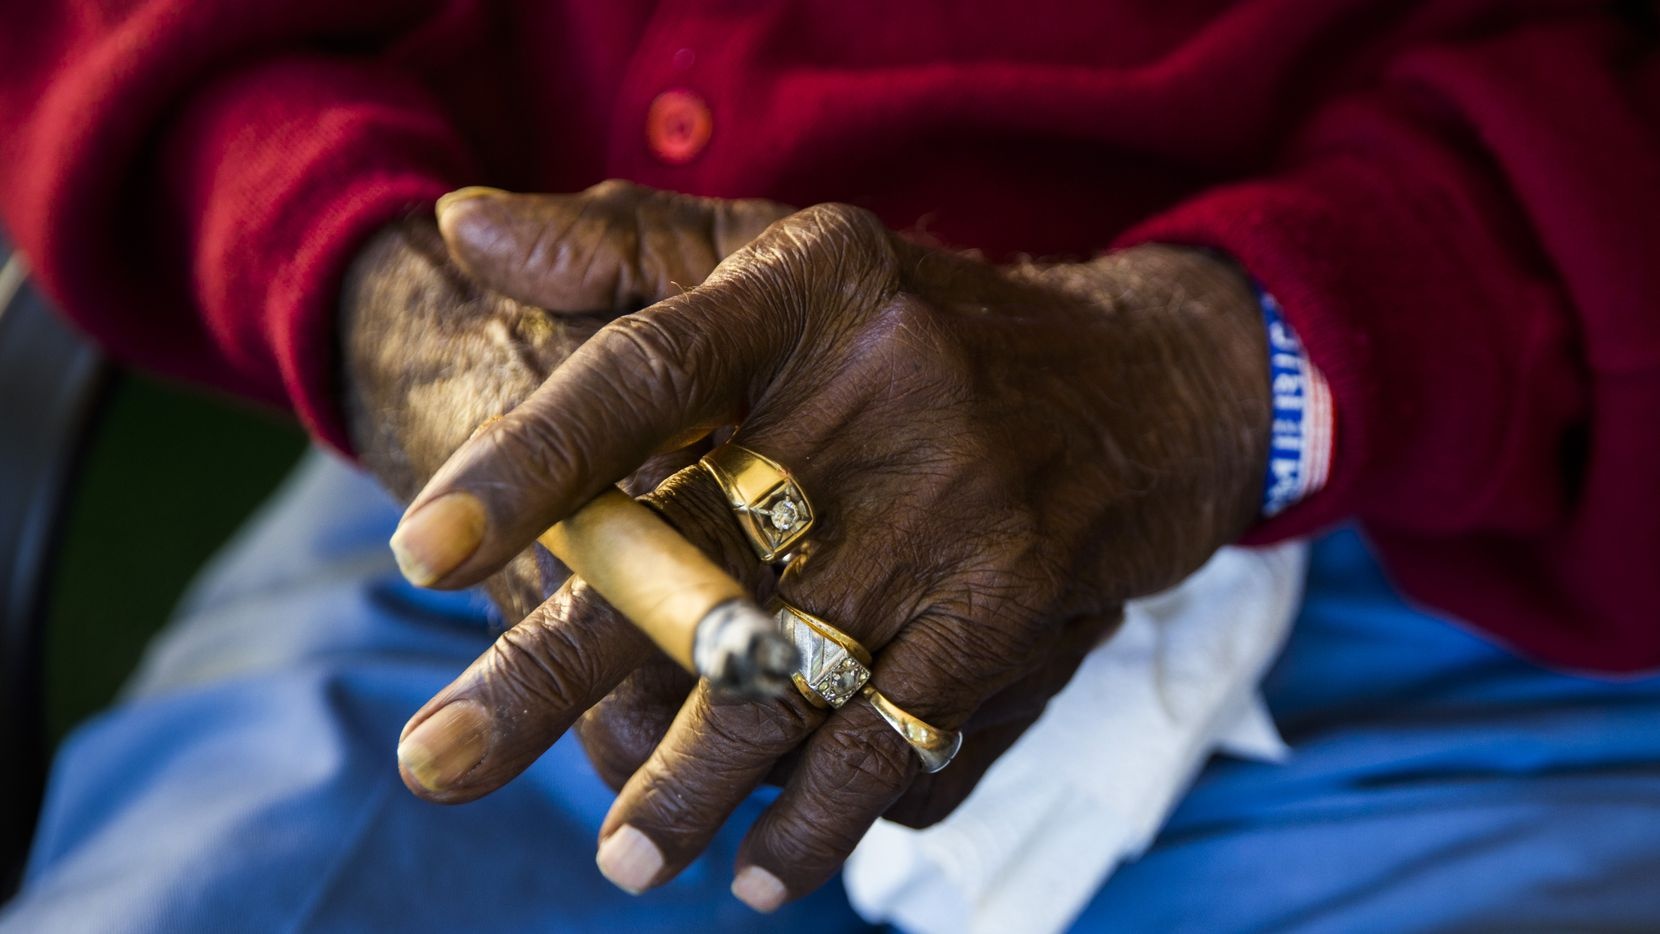 Richard Overton, 111, holds a cigar while sitting on his front porch on Thursday, May 25, 2017, in Austin. Overton is known for smoking cigars and drinking whiskey on his front porch. He is the oldest living U.S. war veteran.